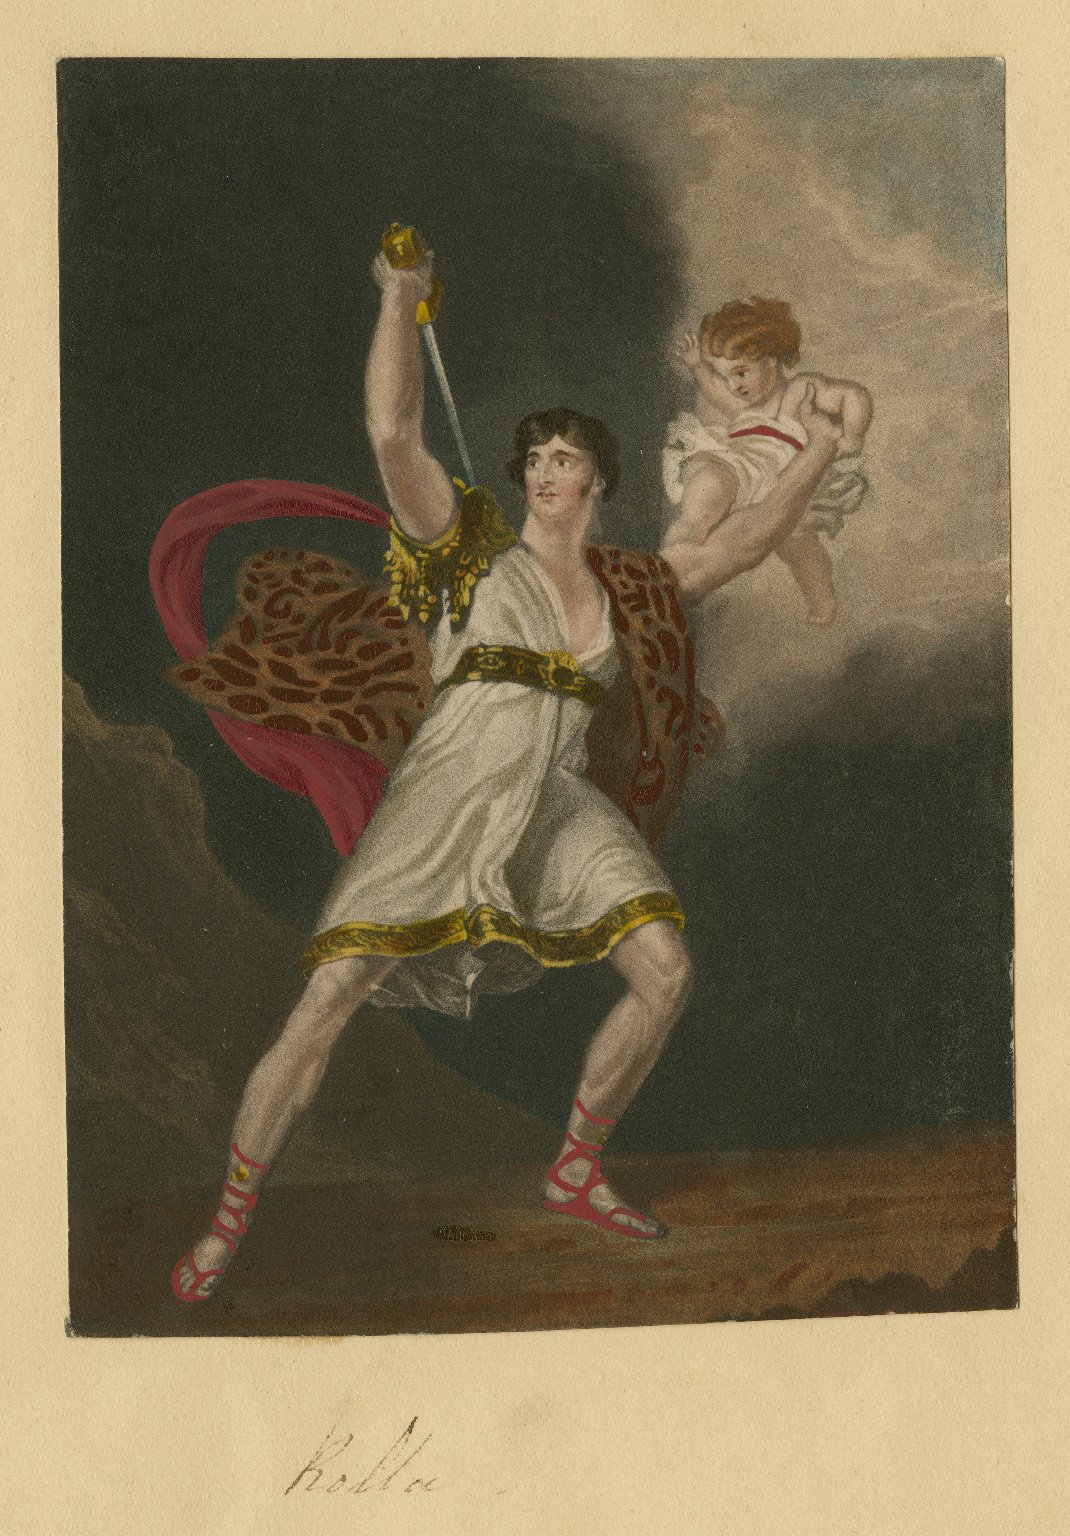 <b>Rolla</b>     	</br>Actor John Philip Kemble as Rolla in Pizzaro, 19th century</br><br/><b>Source: </b><i>J.P. Kemble [as] Rolla (Call number: ART File K31.4 no.61), 19th century, Folger Digital Image Collection, University of Cincinnati Libraries Digital Collections, University of Cincinnati, http://digproj.libraries.uc.edu:8180/luna/servlet/s/g7xh17</i>